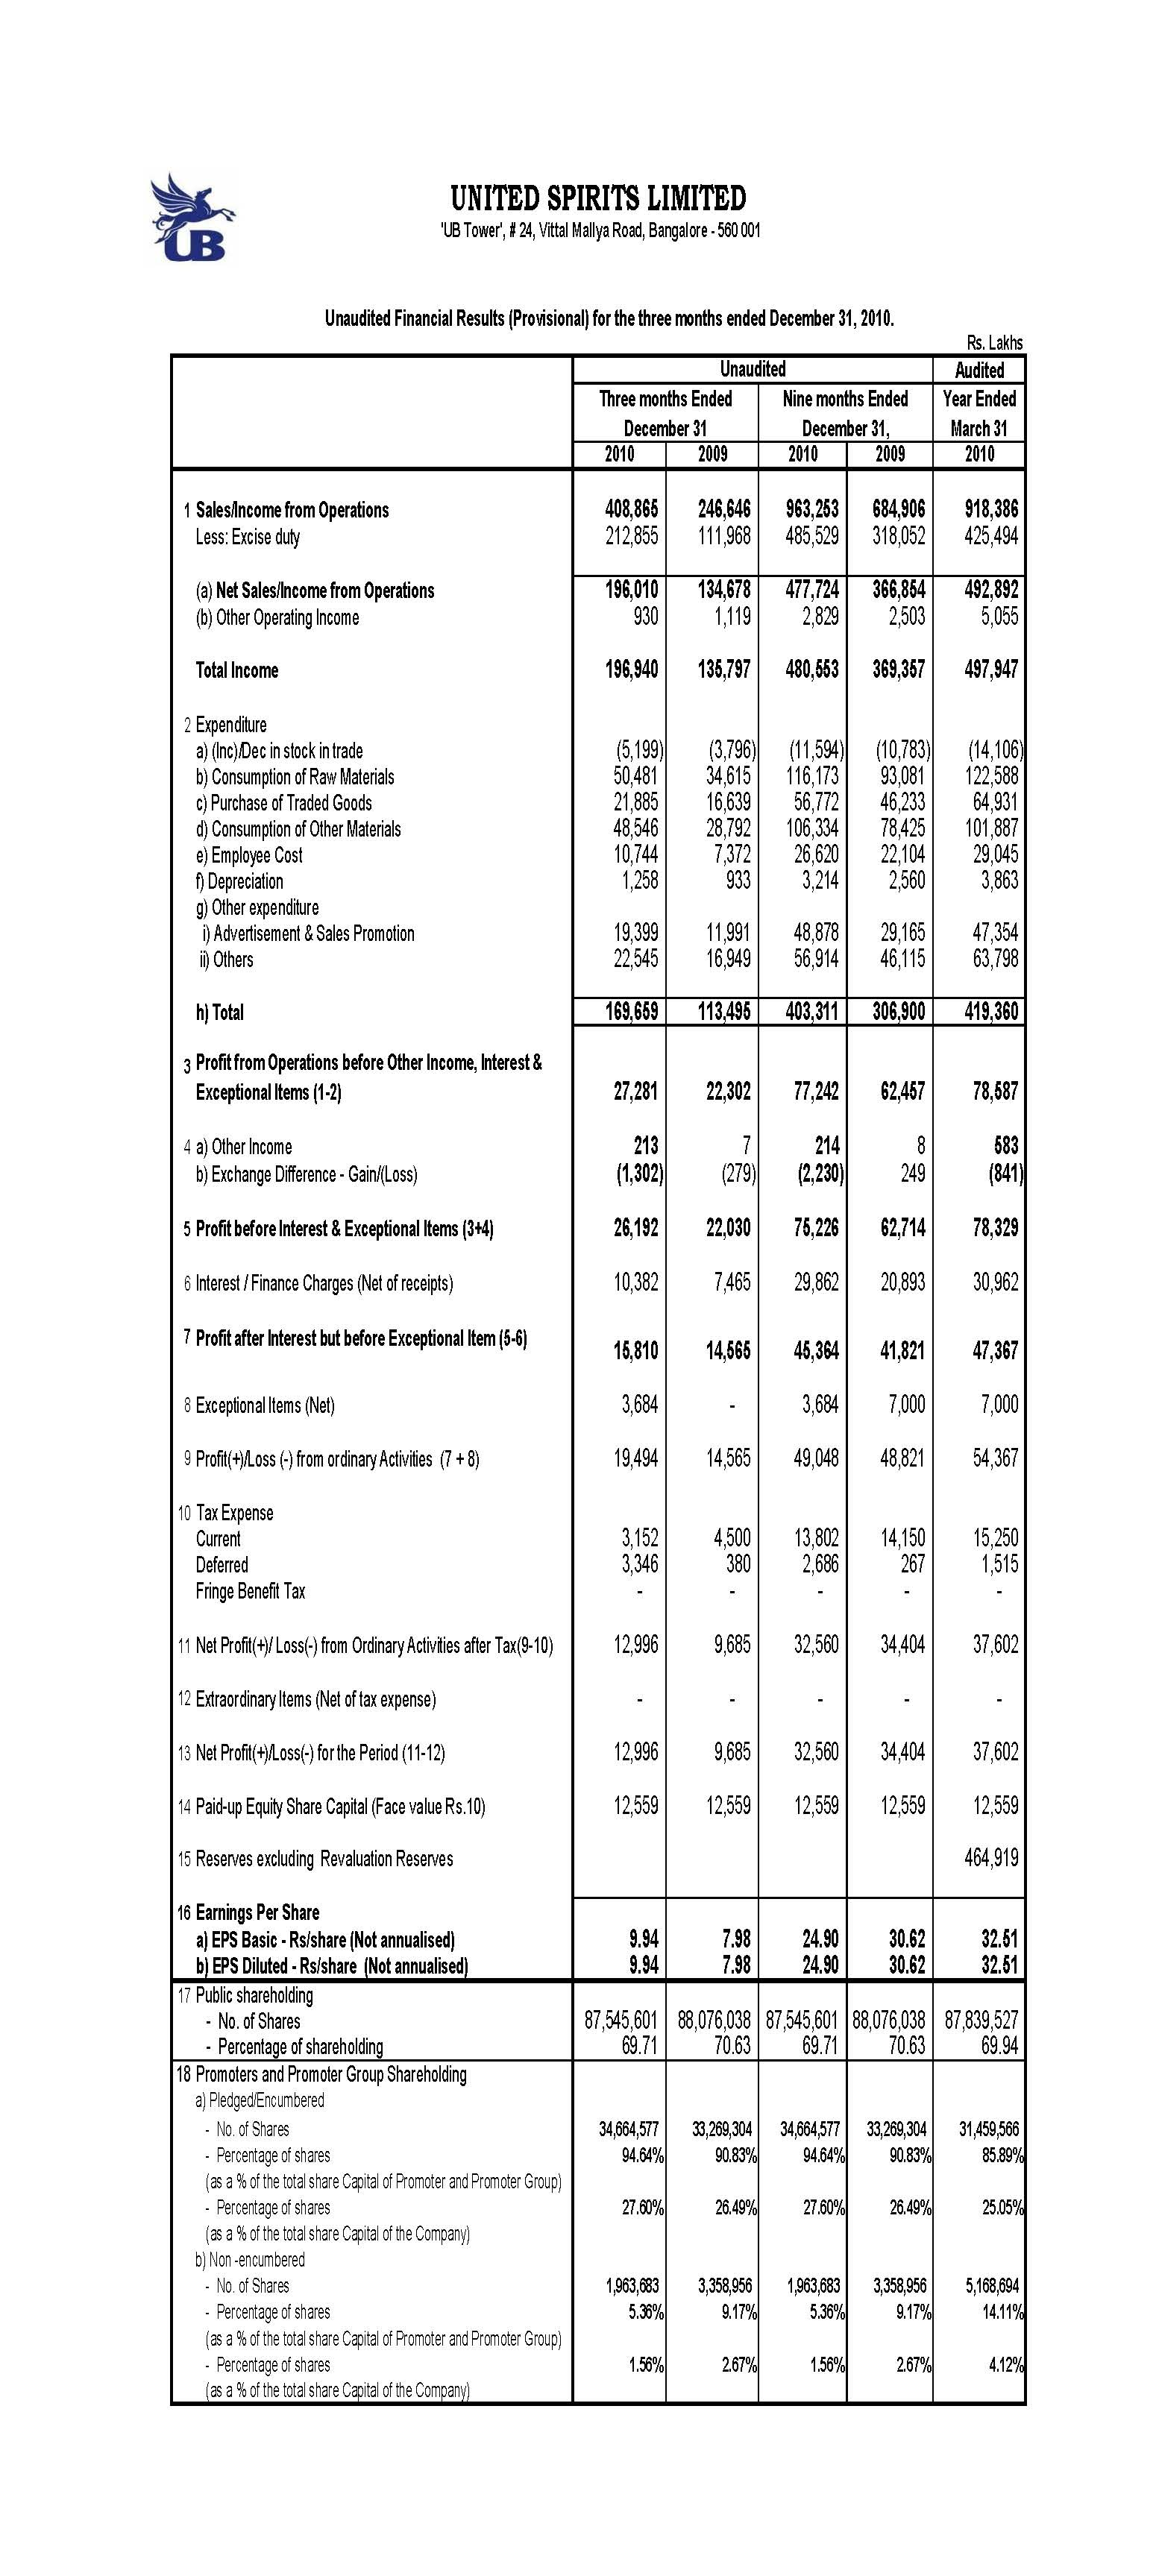 Unaudited Financial Results (Provisional) for the three months ended December 31, 2010.